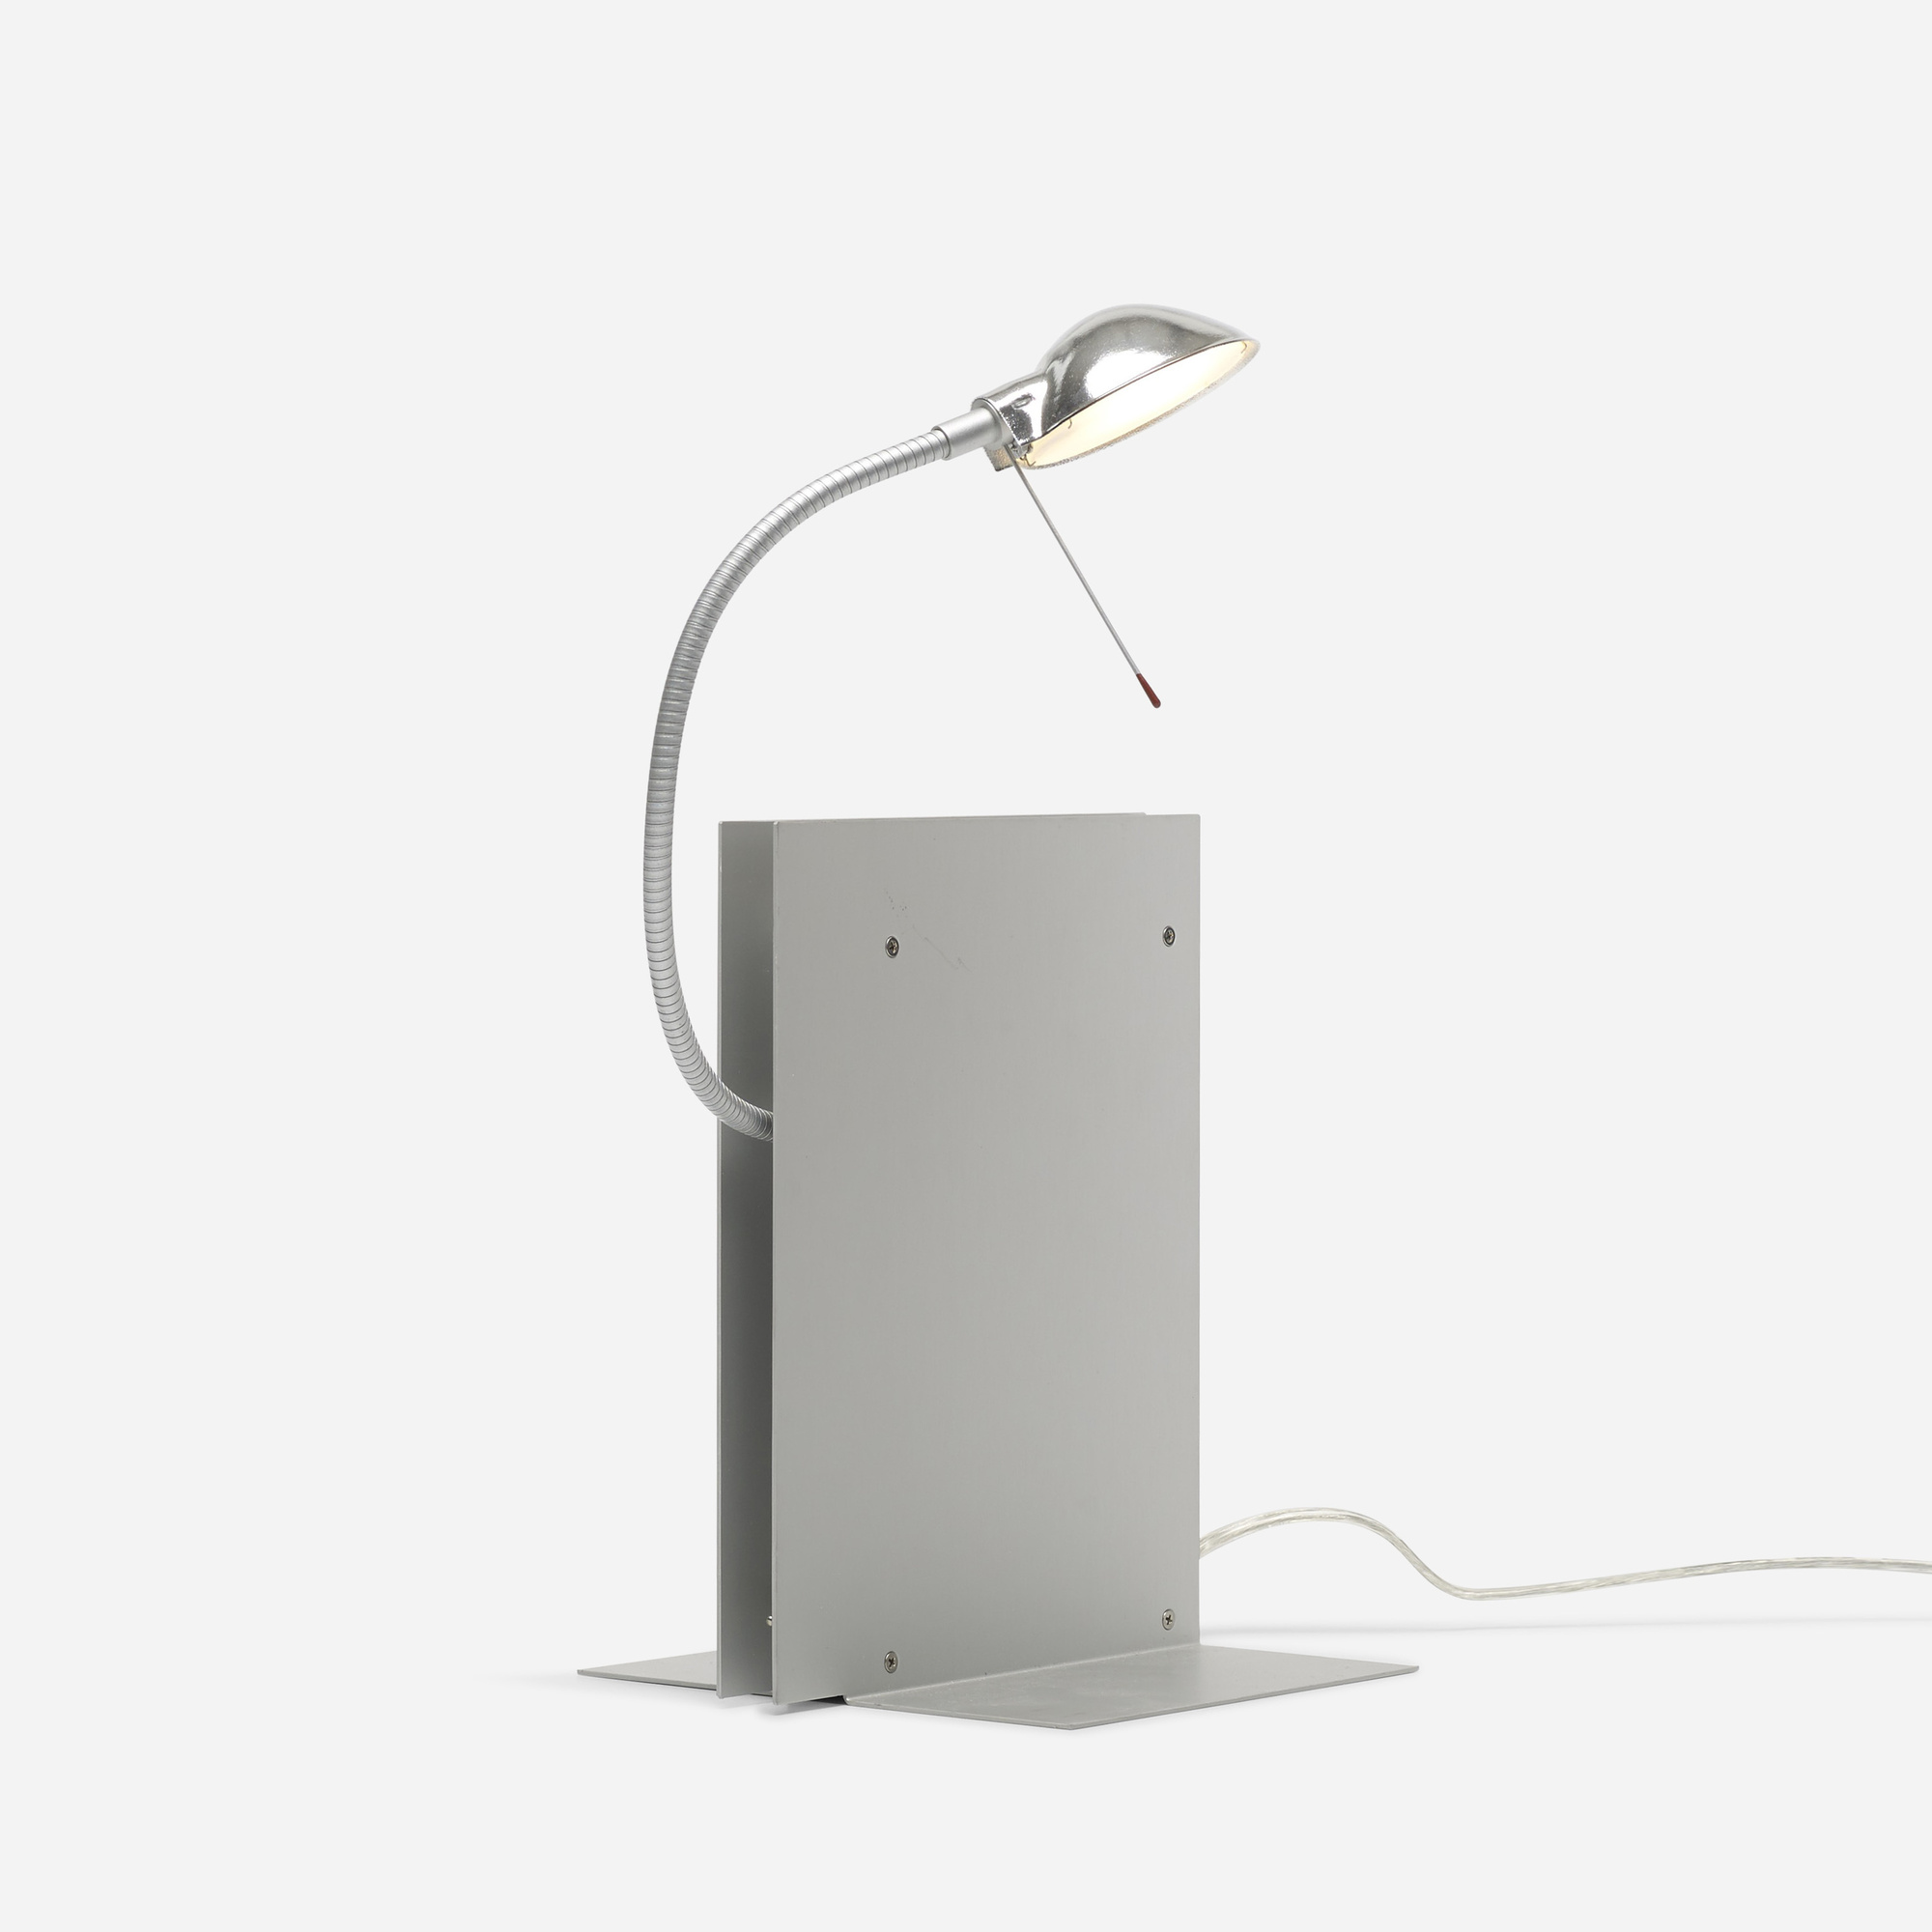 547: Ingo Maurer / Oskar bookshelf lamp (1 of 1)